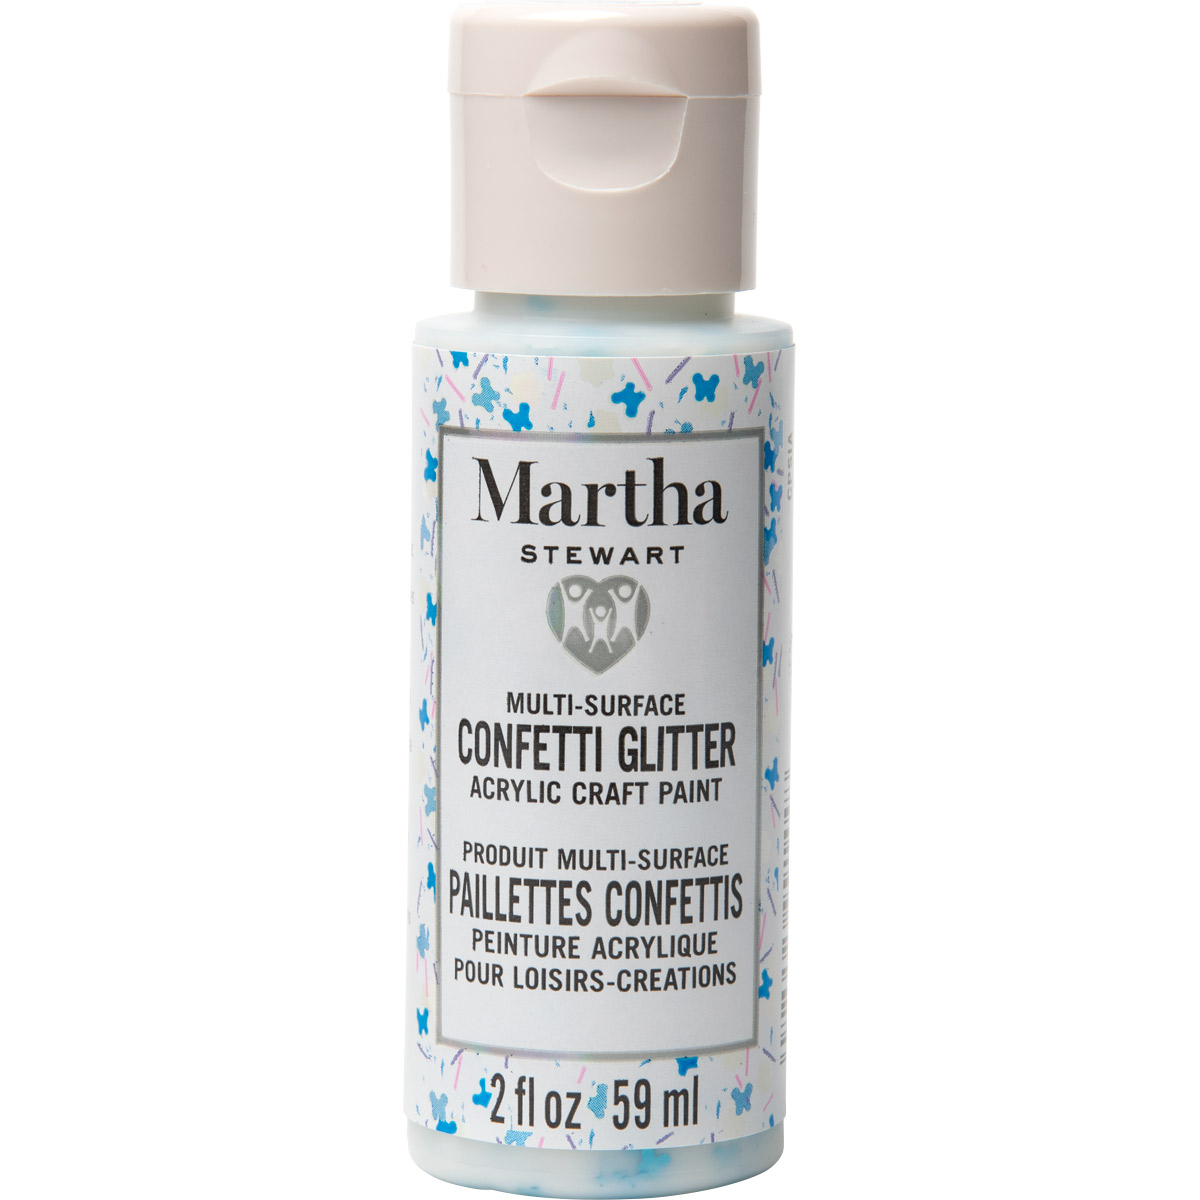 Martha Stewart ® Multi-Surface Confetti Glitter Acrylic Craft Paint CPSIA - Butterfly Party, 2 oz. -